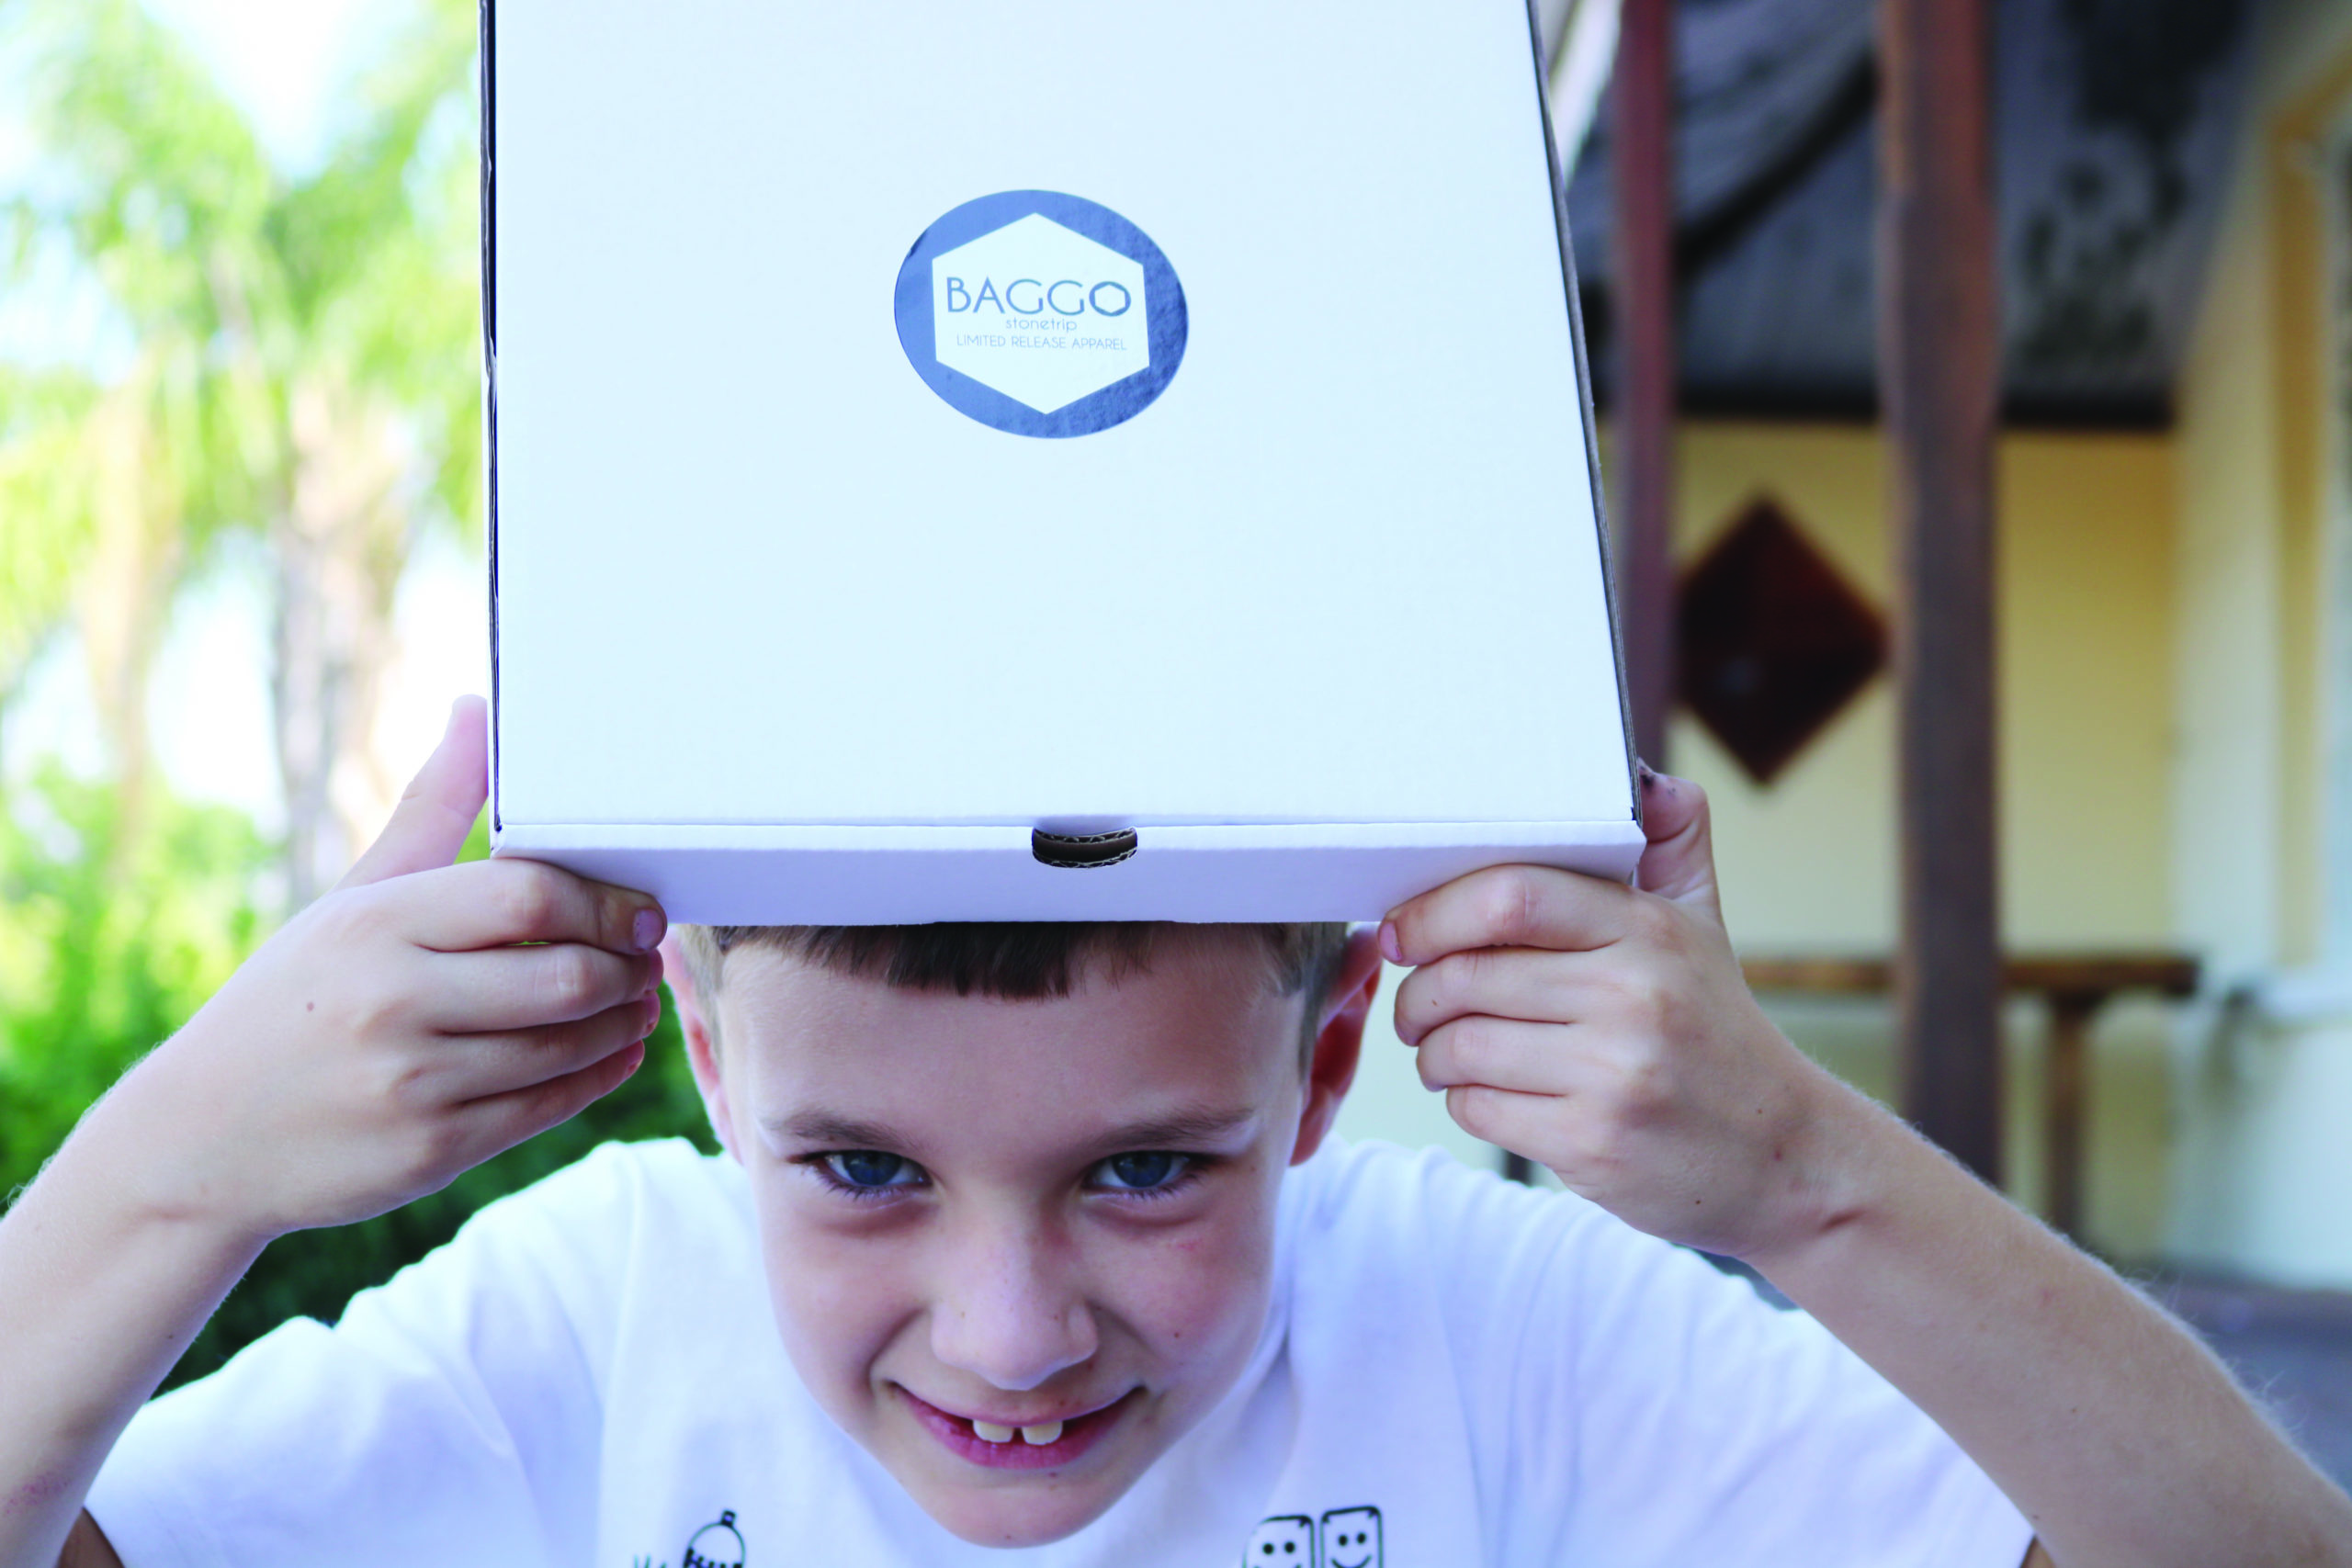 Eleven-year-old entrepreneur Jan Louwrens of Baggo Stronetrip has teamed up with Food For Mzansi to provide child-friendly covid-19 safety information in eleven languages.